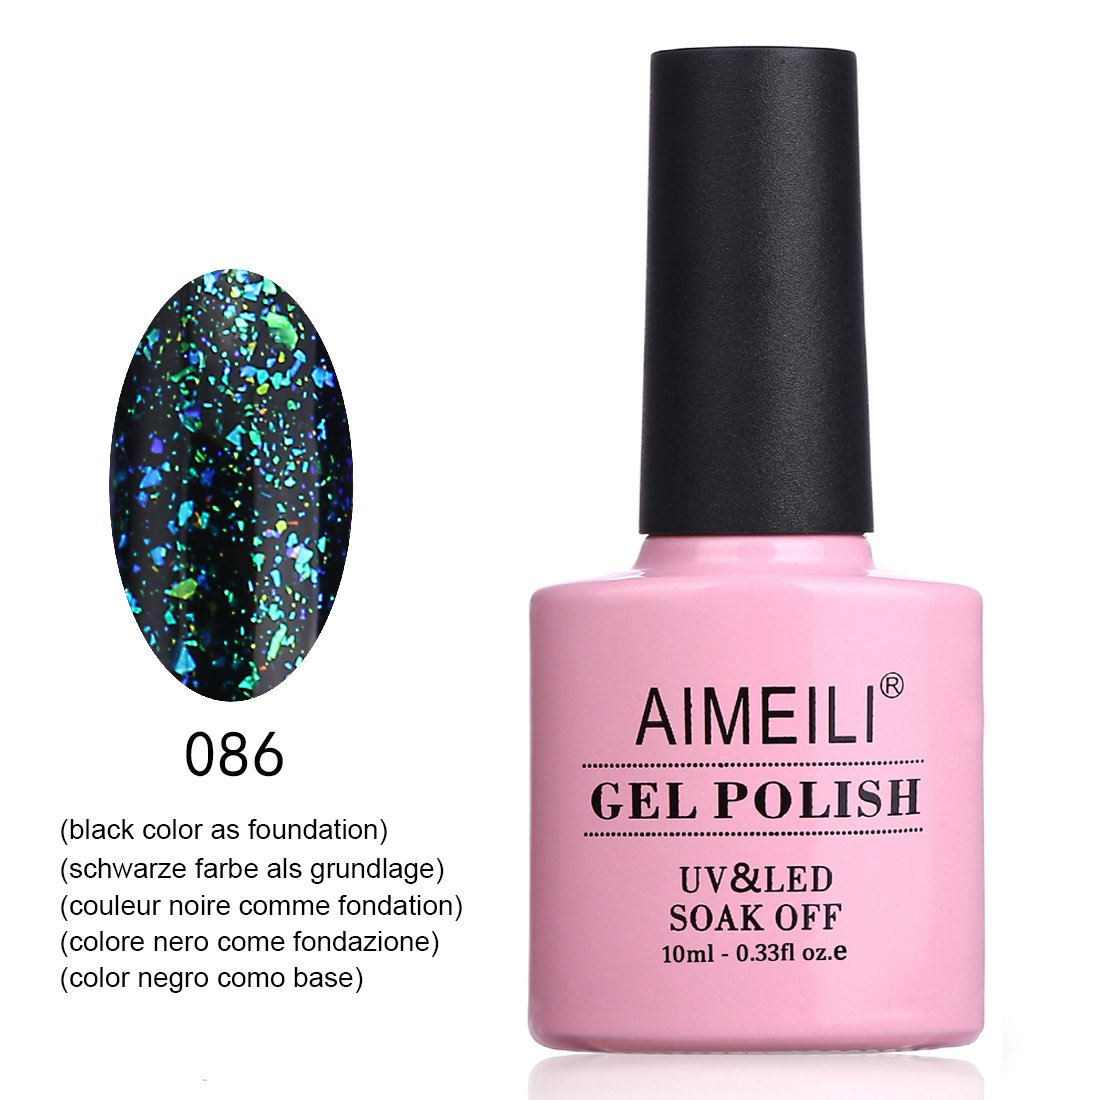 AIMEILI Soak Off UV LED Galaxy Paranoid Range Paillettes Claires Vernis à Ongles Gel Semi-Permanent Vert Gel Polish - Jupiter's Love Letter (086) 10ml